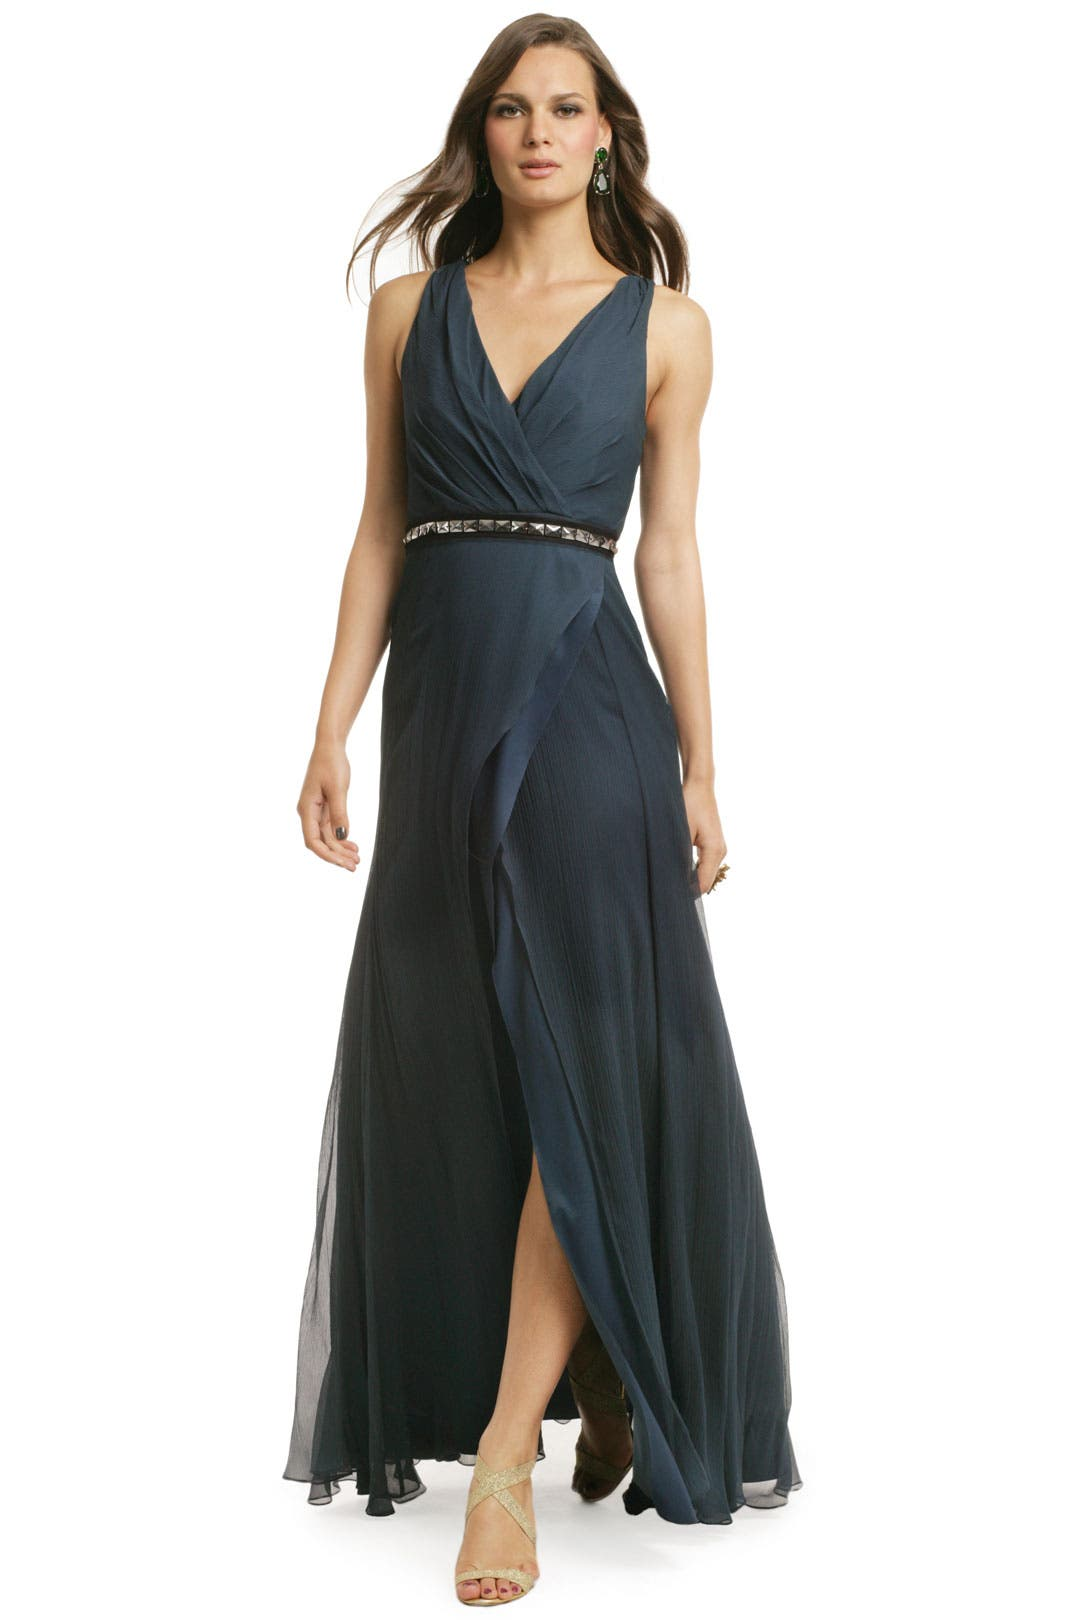 Want And Wonder Gown by Vera Wang Lavender